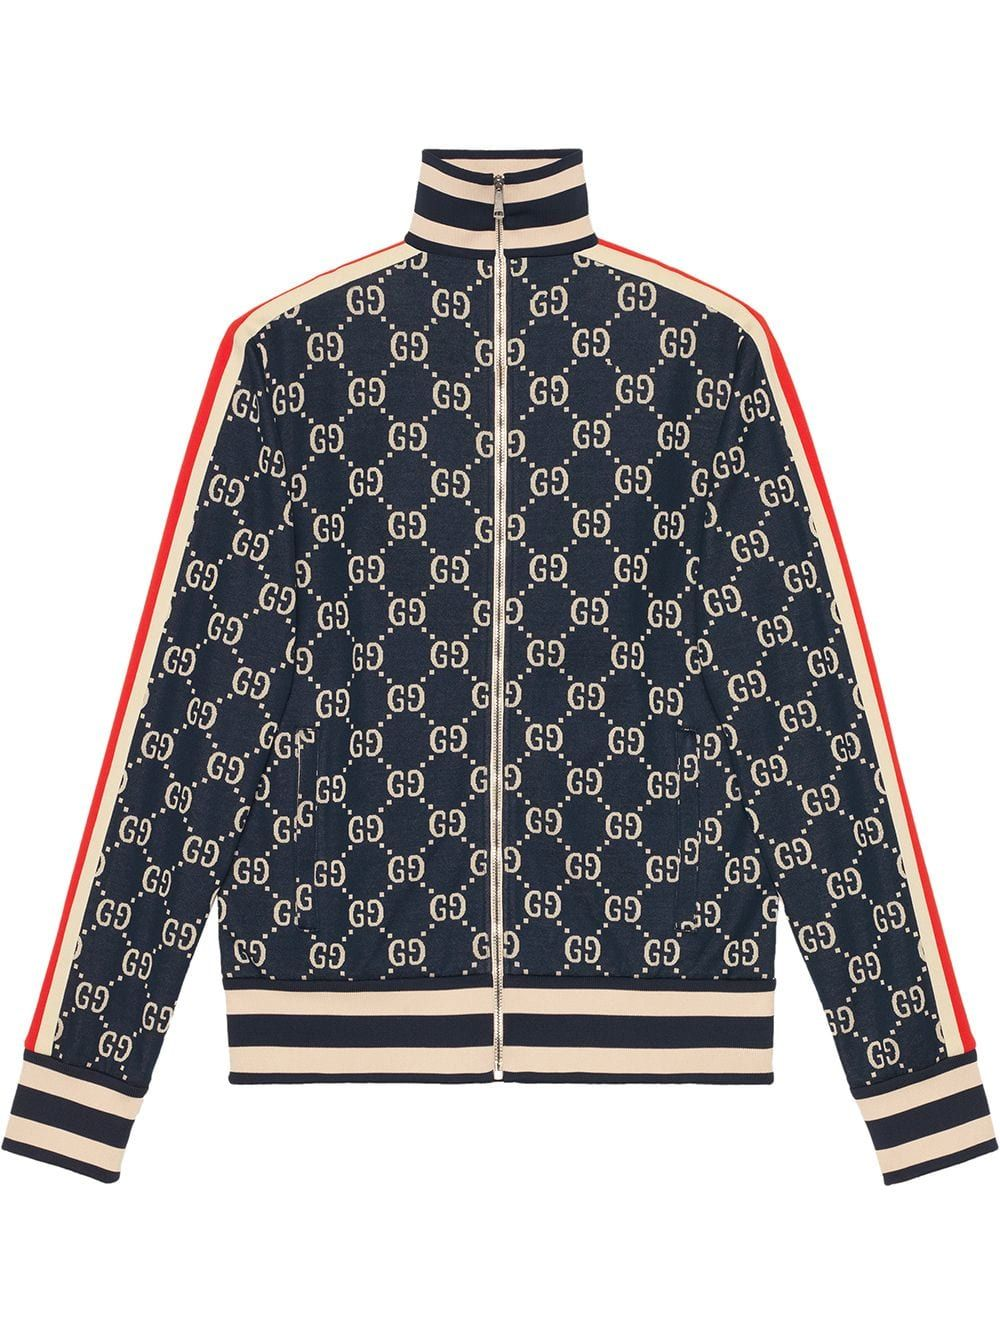 ecdd0f1f1 Gucci GG jacquard cotton jacket - Blue in 2019 | Products | Jackets ...